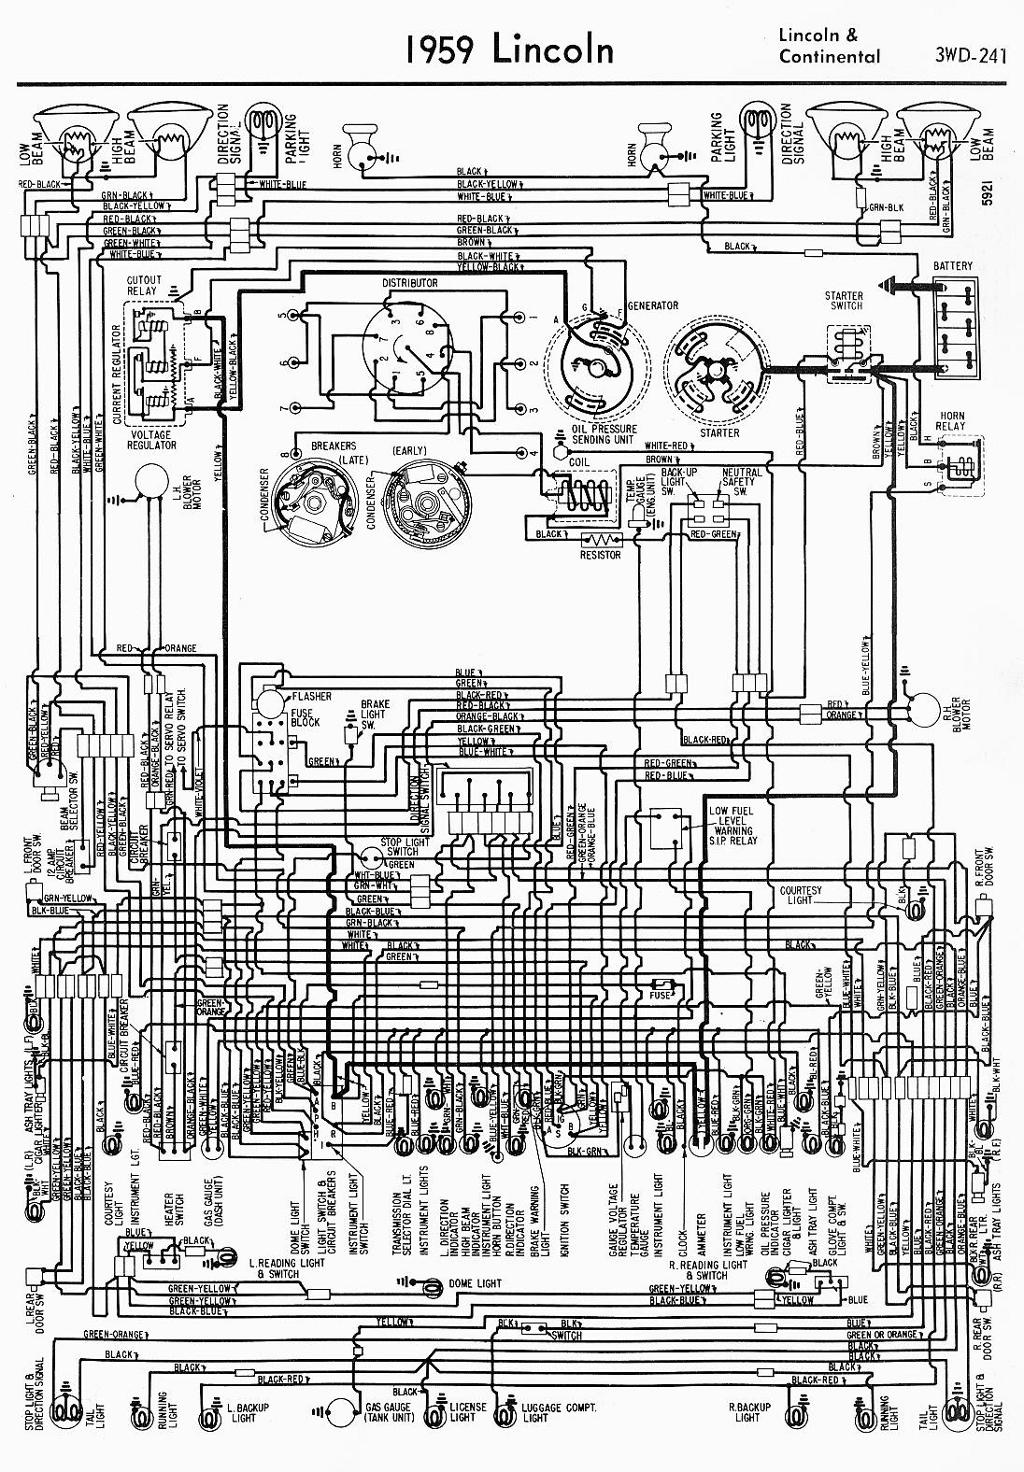 1947 lincoln continental wiring diagram wiring diagram g11 1949 lincoln wiring diagram